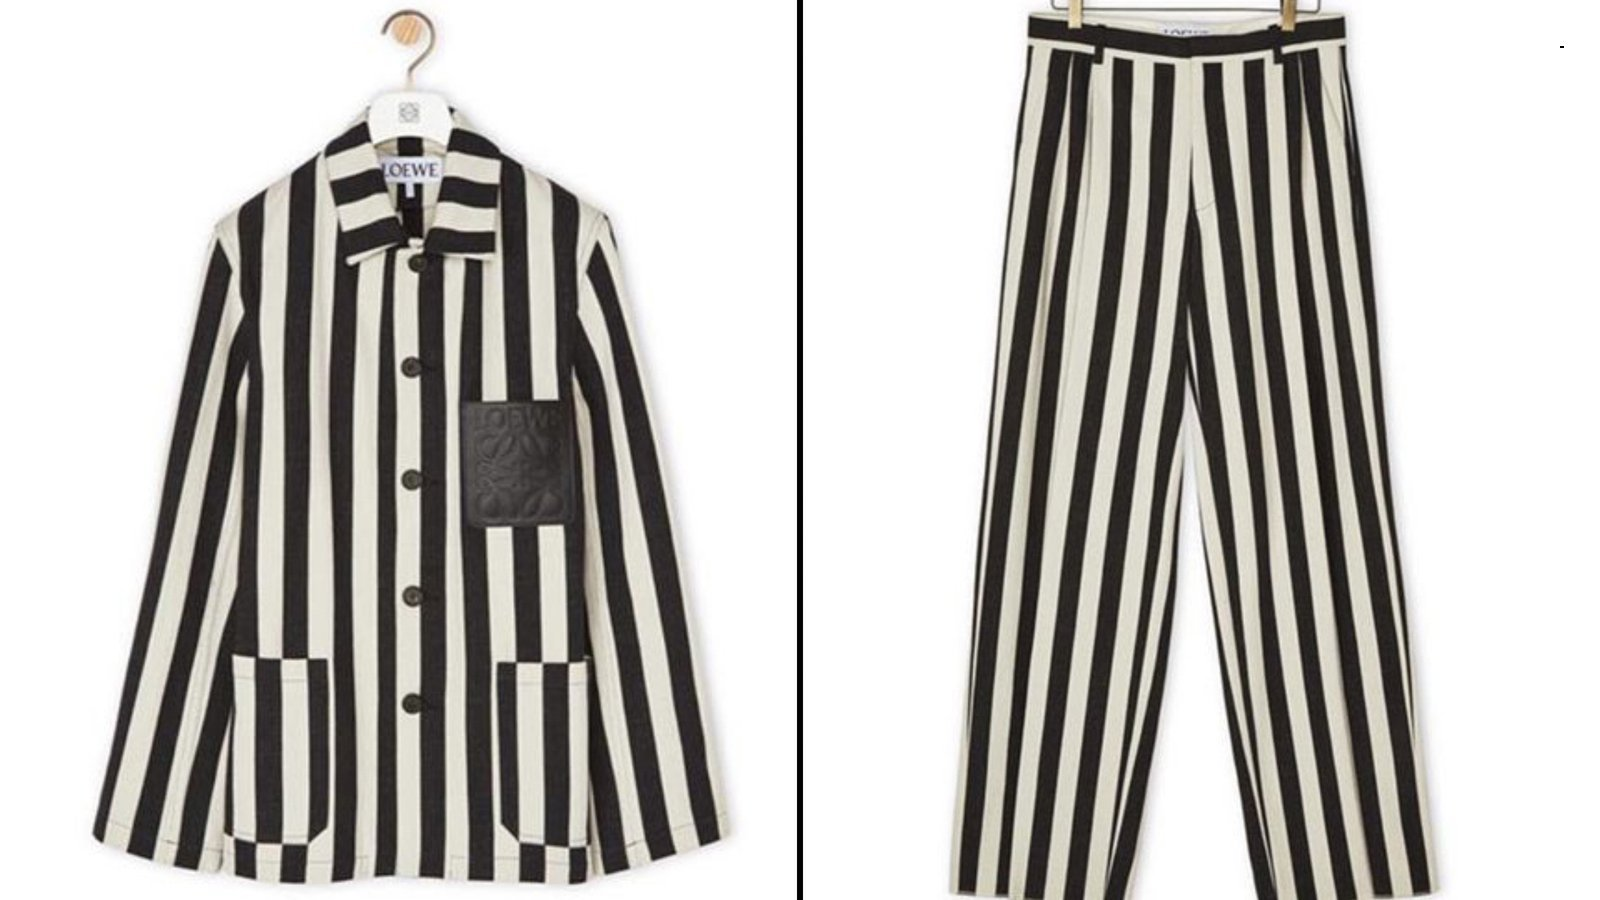 The controversial outfit is seen in images posted on Loewe's website. (Credit: Loewe via CNN)